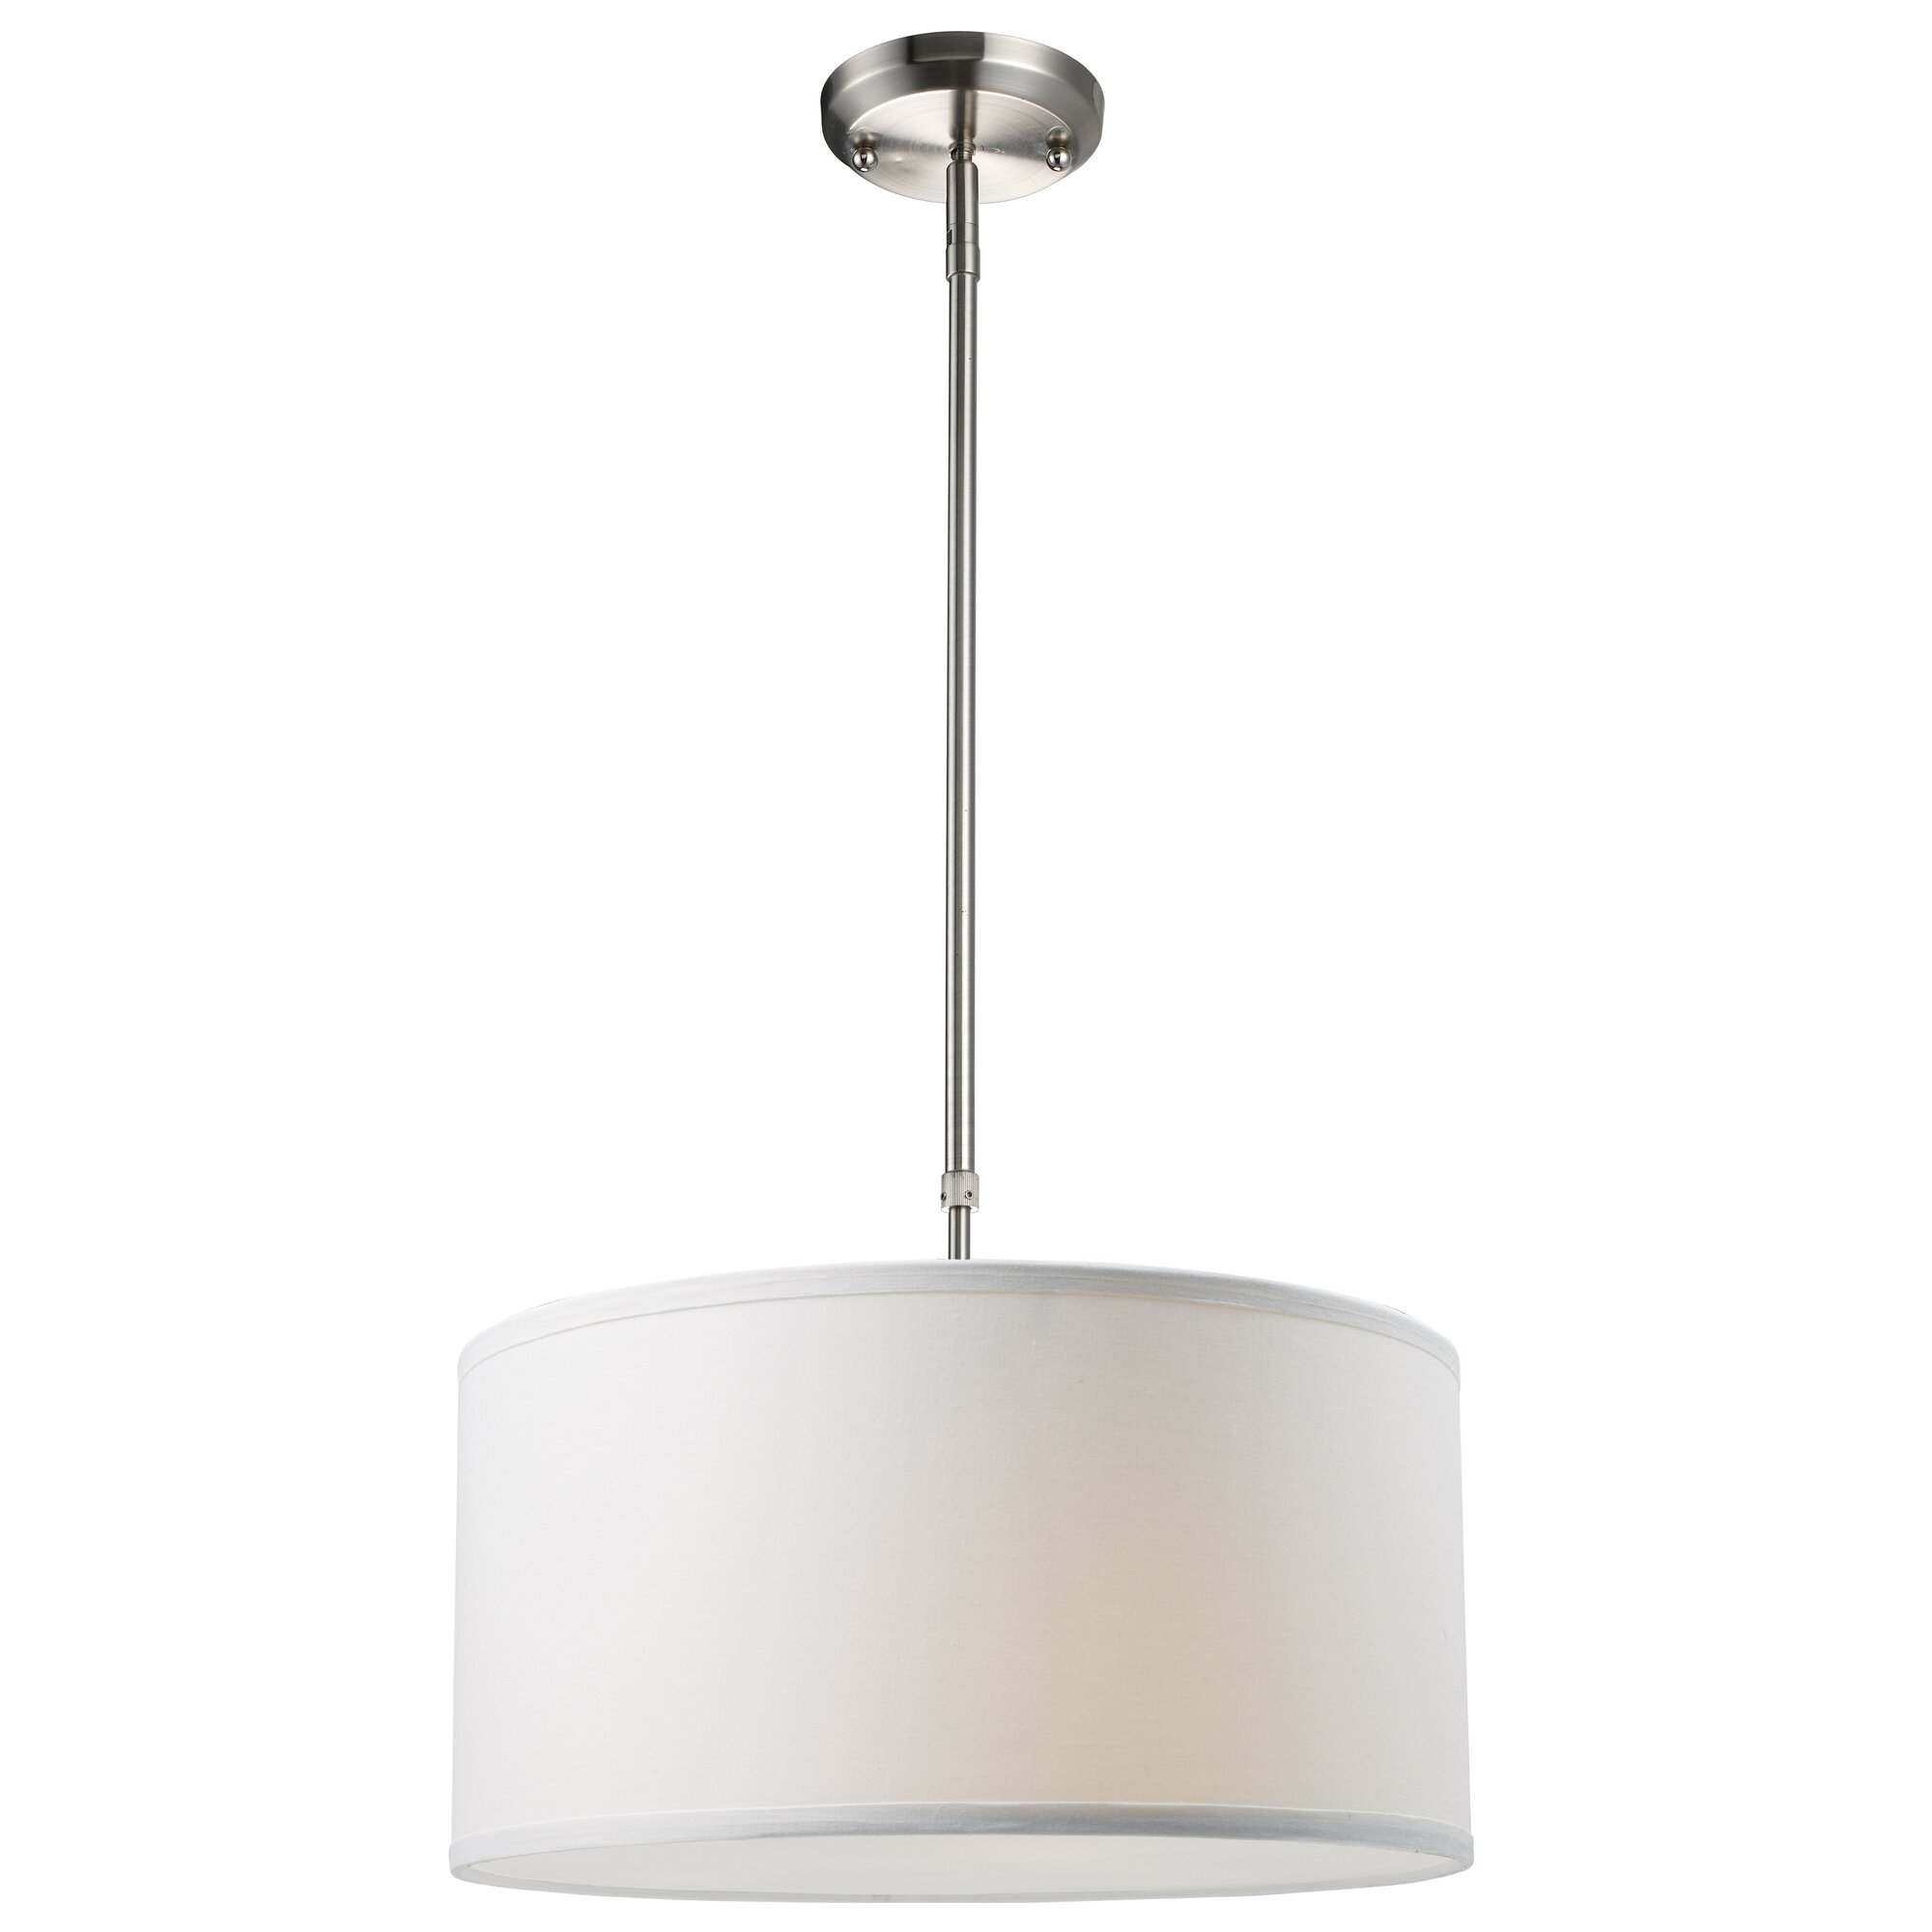 Large Foyer Drum Pendant : Z lite albion light drum foyer convertible pendant